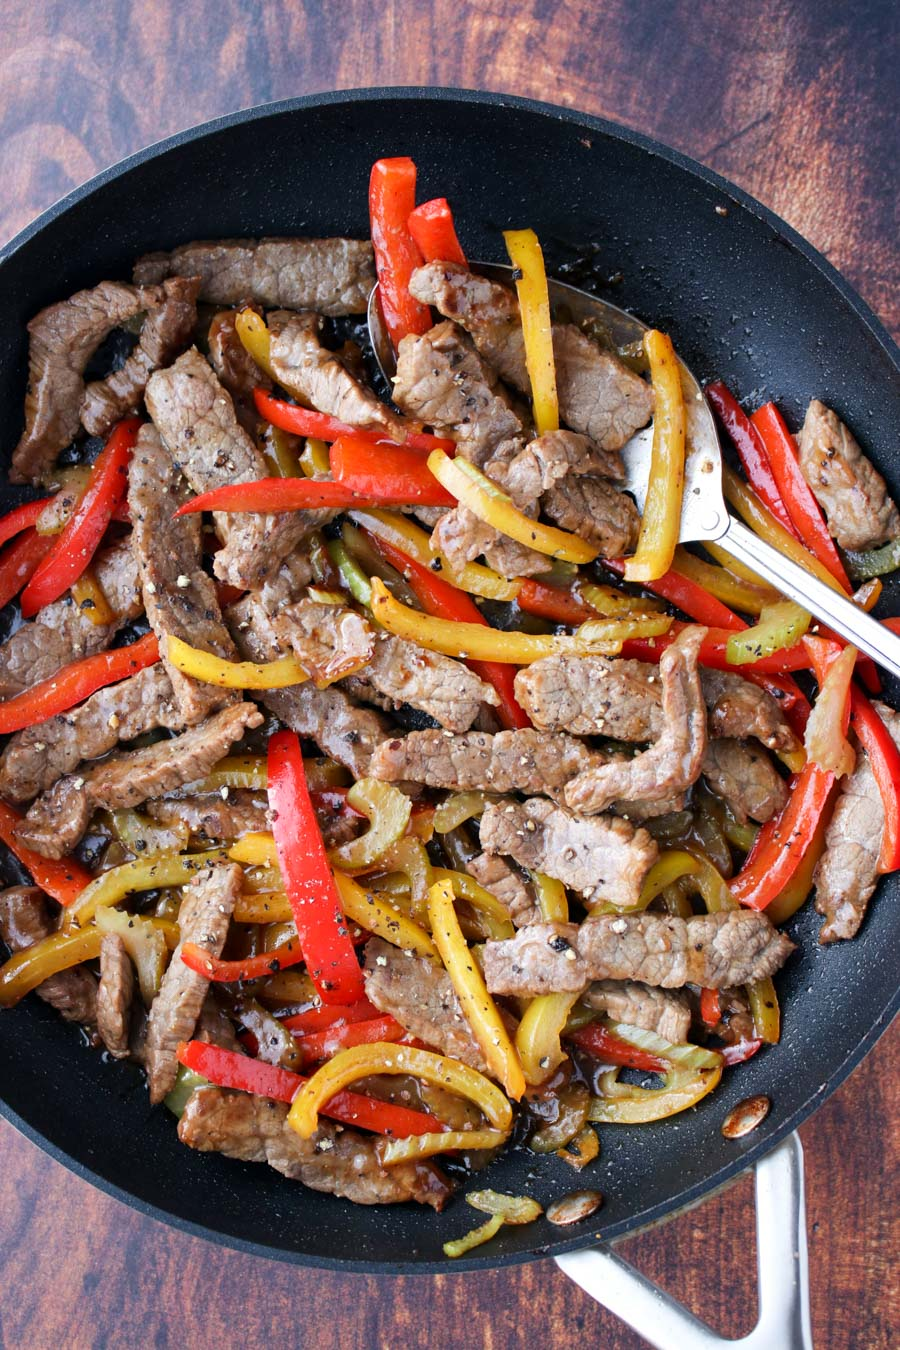 Skillet filled with beef strips and red and yellow bell peppers